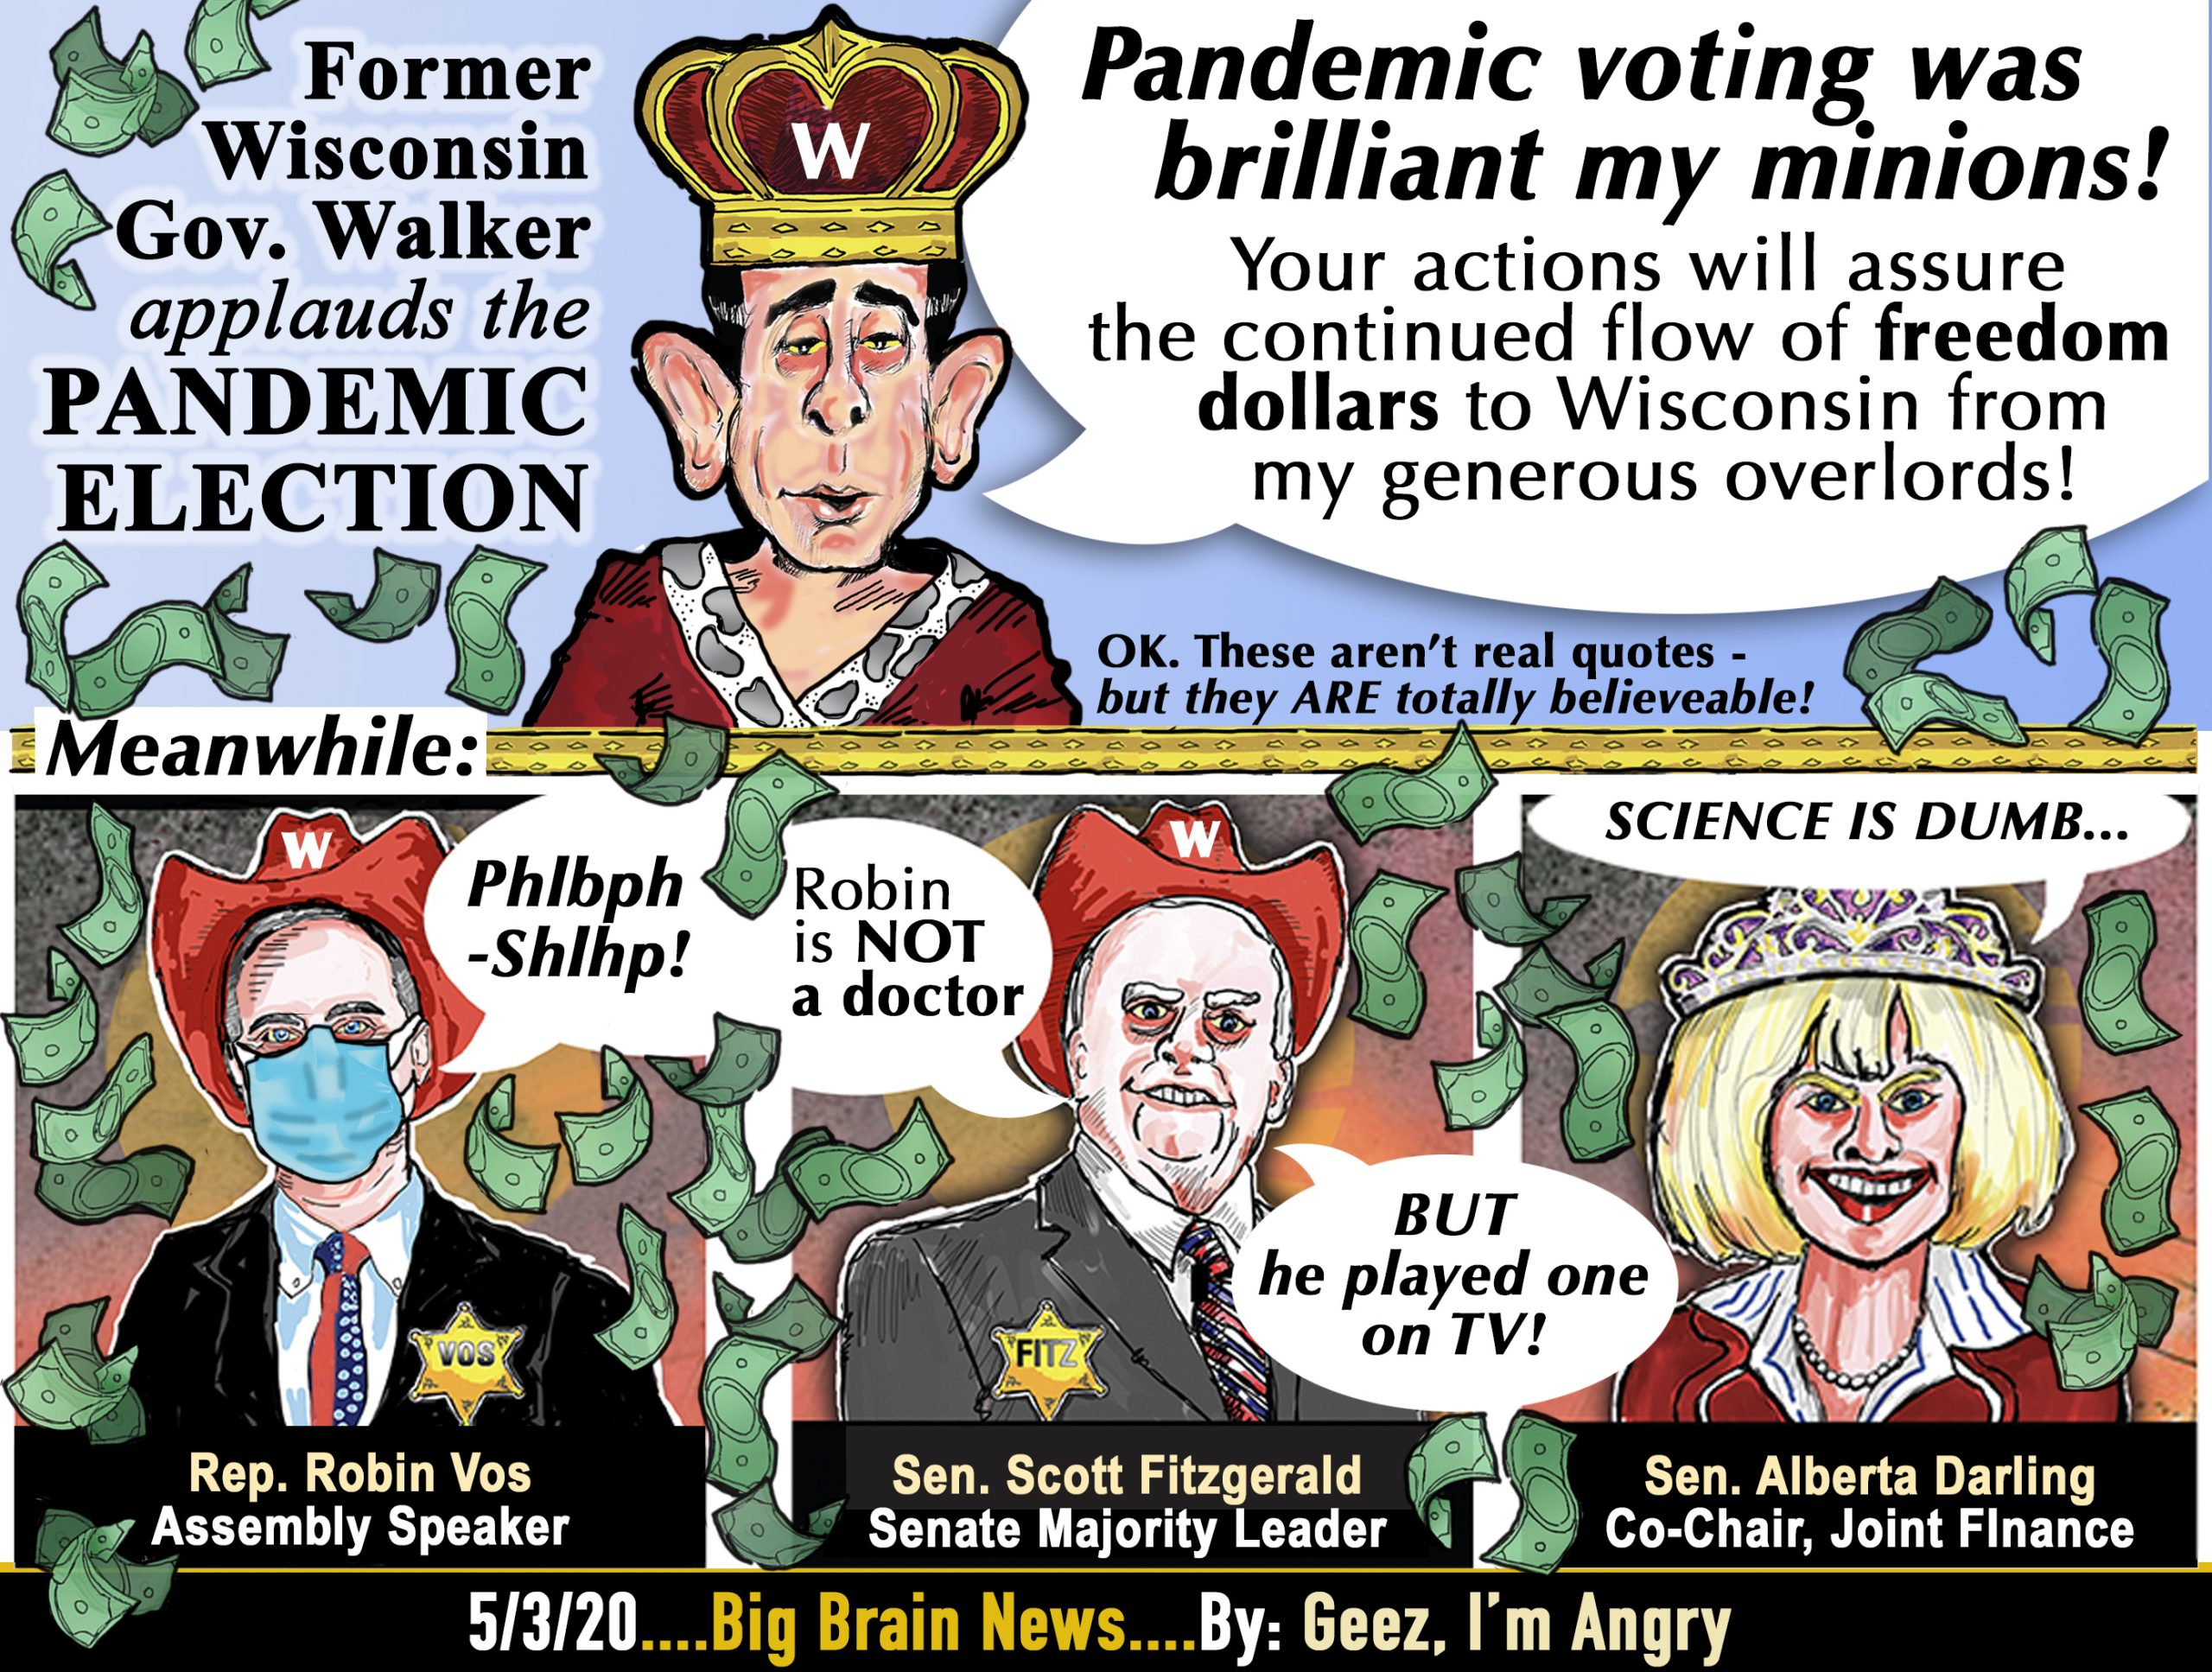 Former Wisconsin Governor Scott Walker congratulates his minions! Pandemic voting was brilliant my minions! Cartoon by Geez! I'm Angry